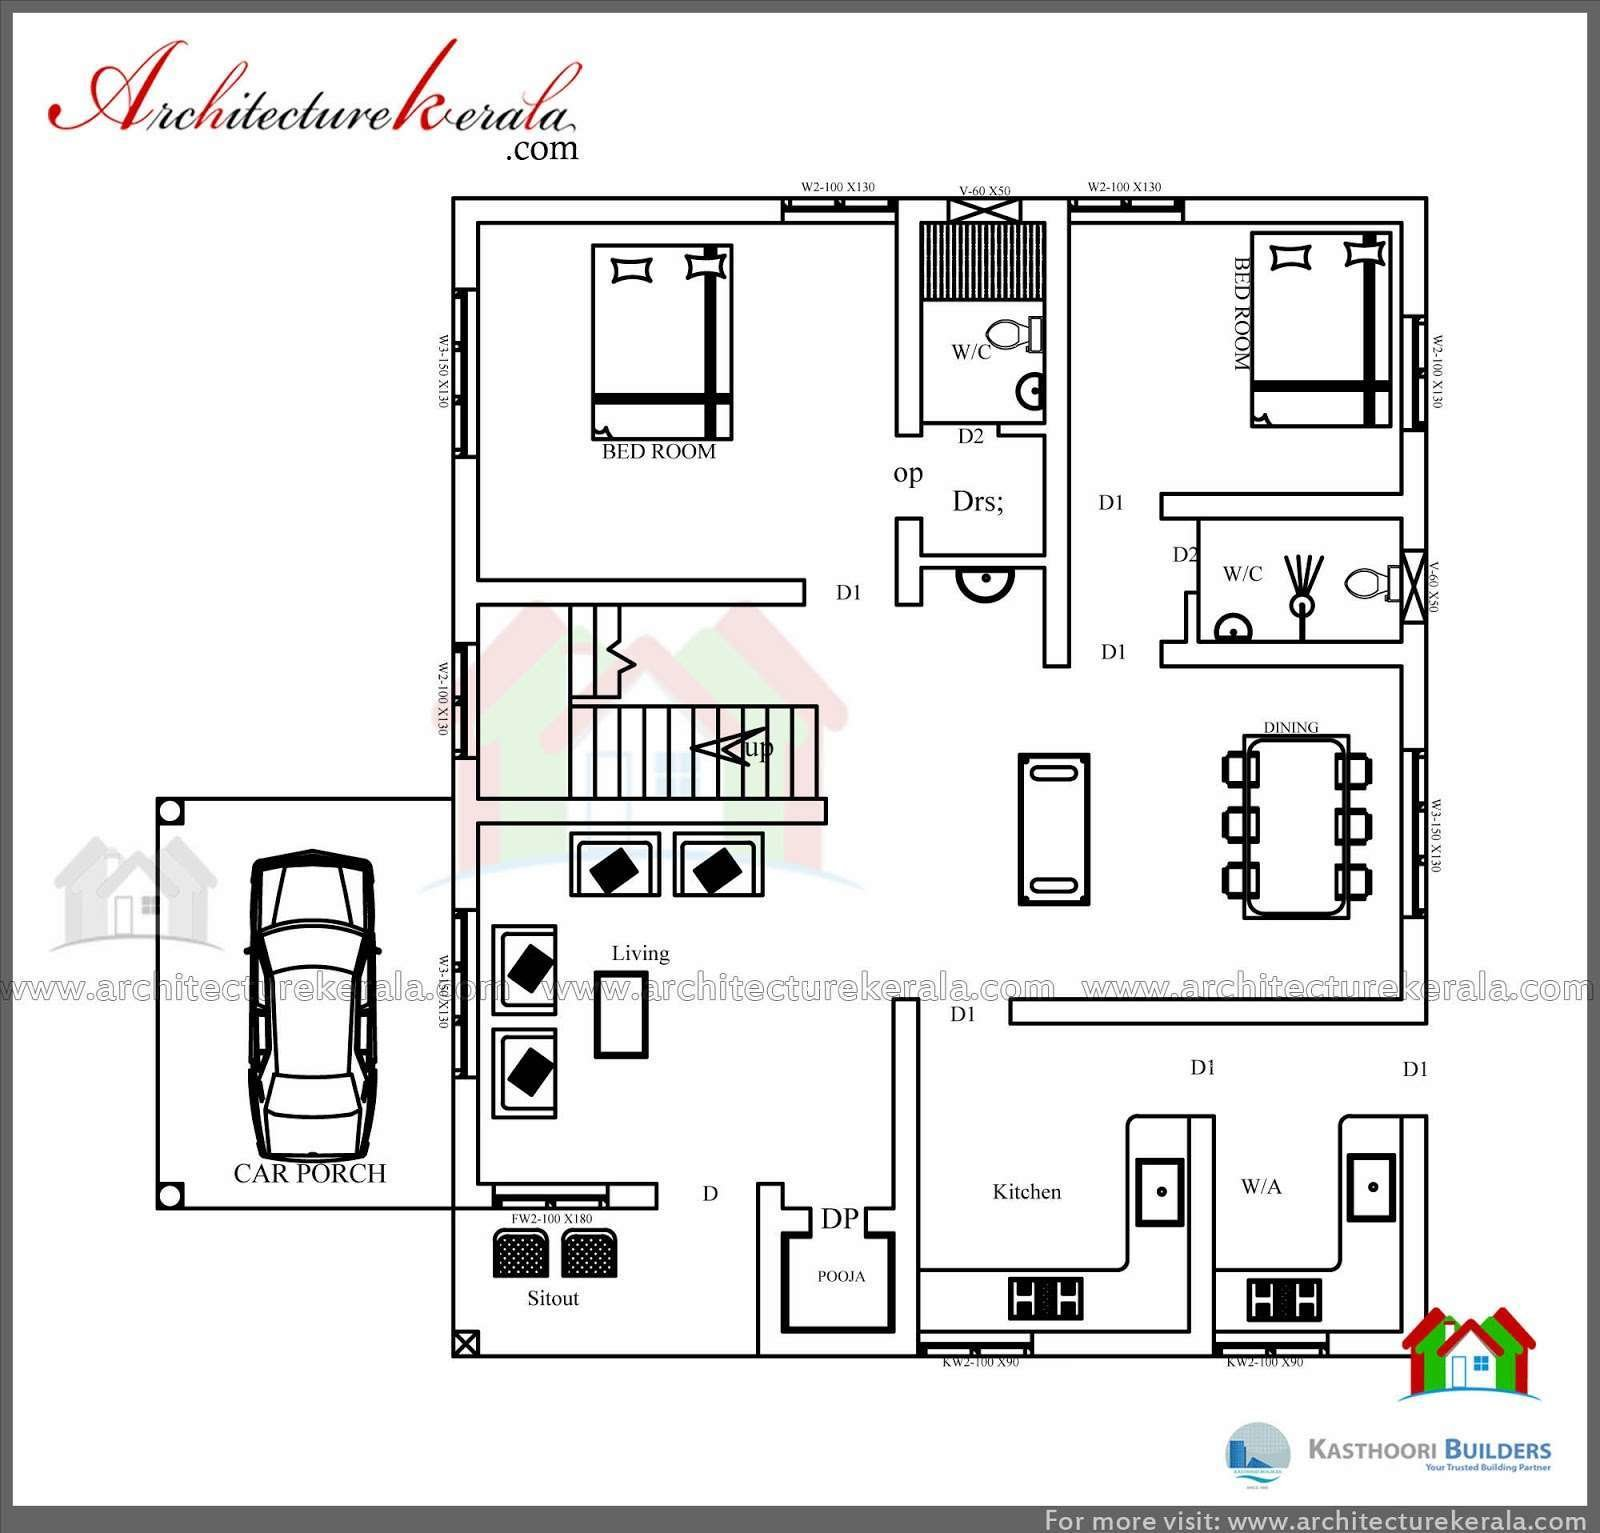 Best House Plans With Cost To Build Estimates Ideal Low Cost 3 With Pictures